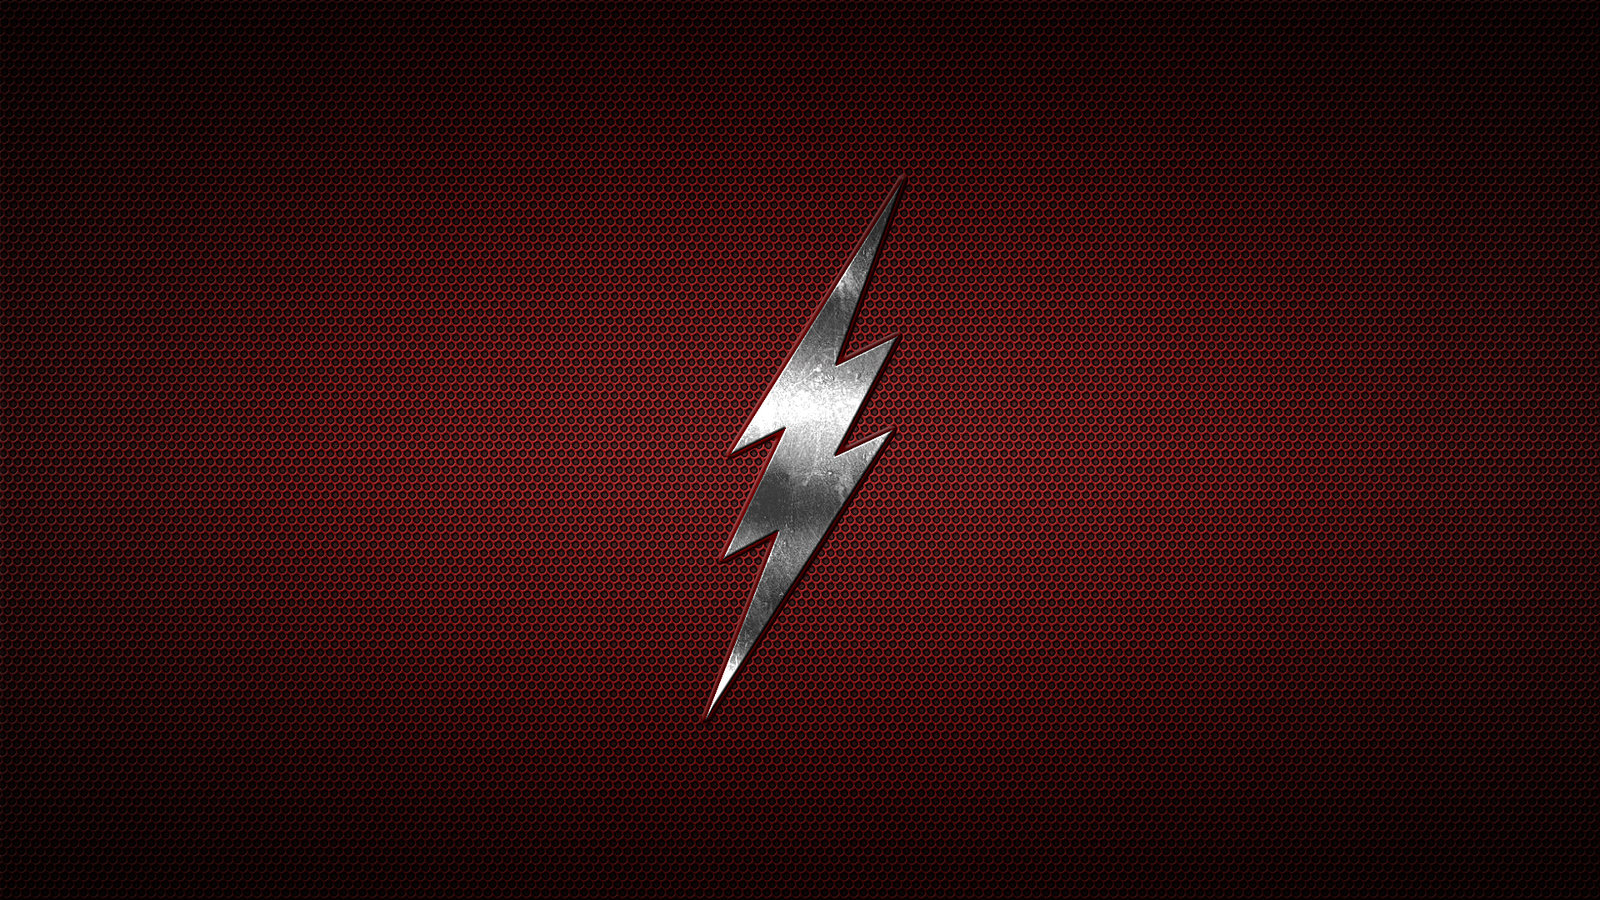 The Flash Logo Hd Wallpaper Best Wallpapers 1600x900